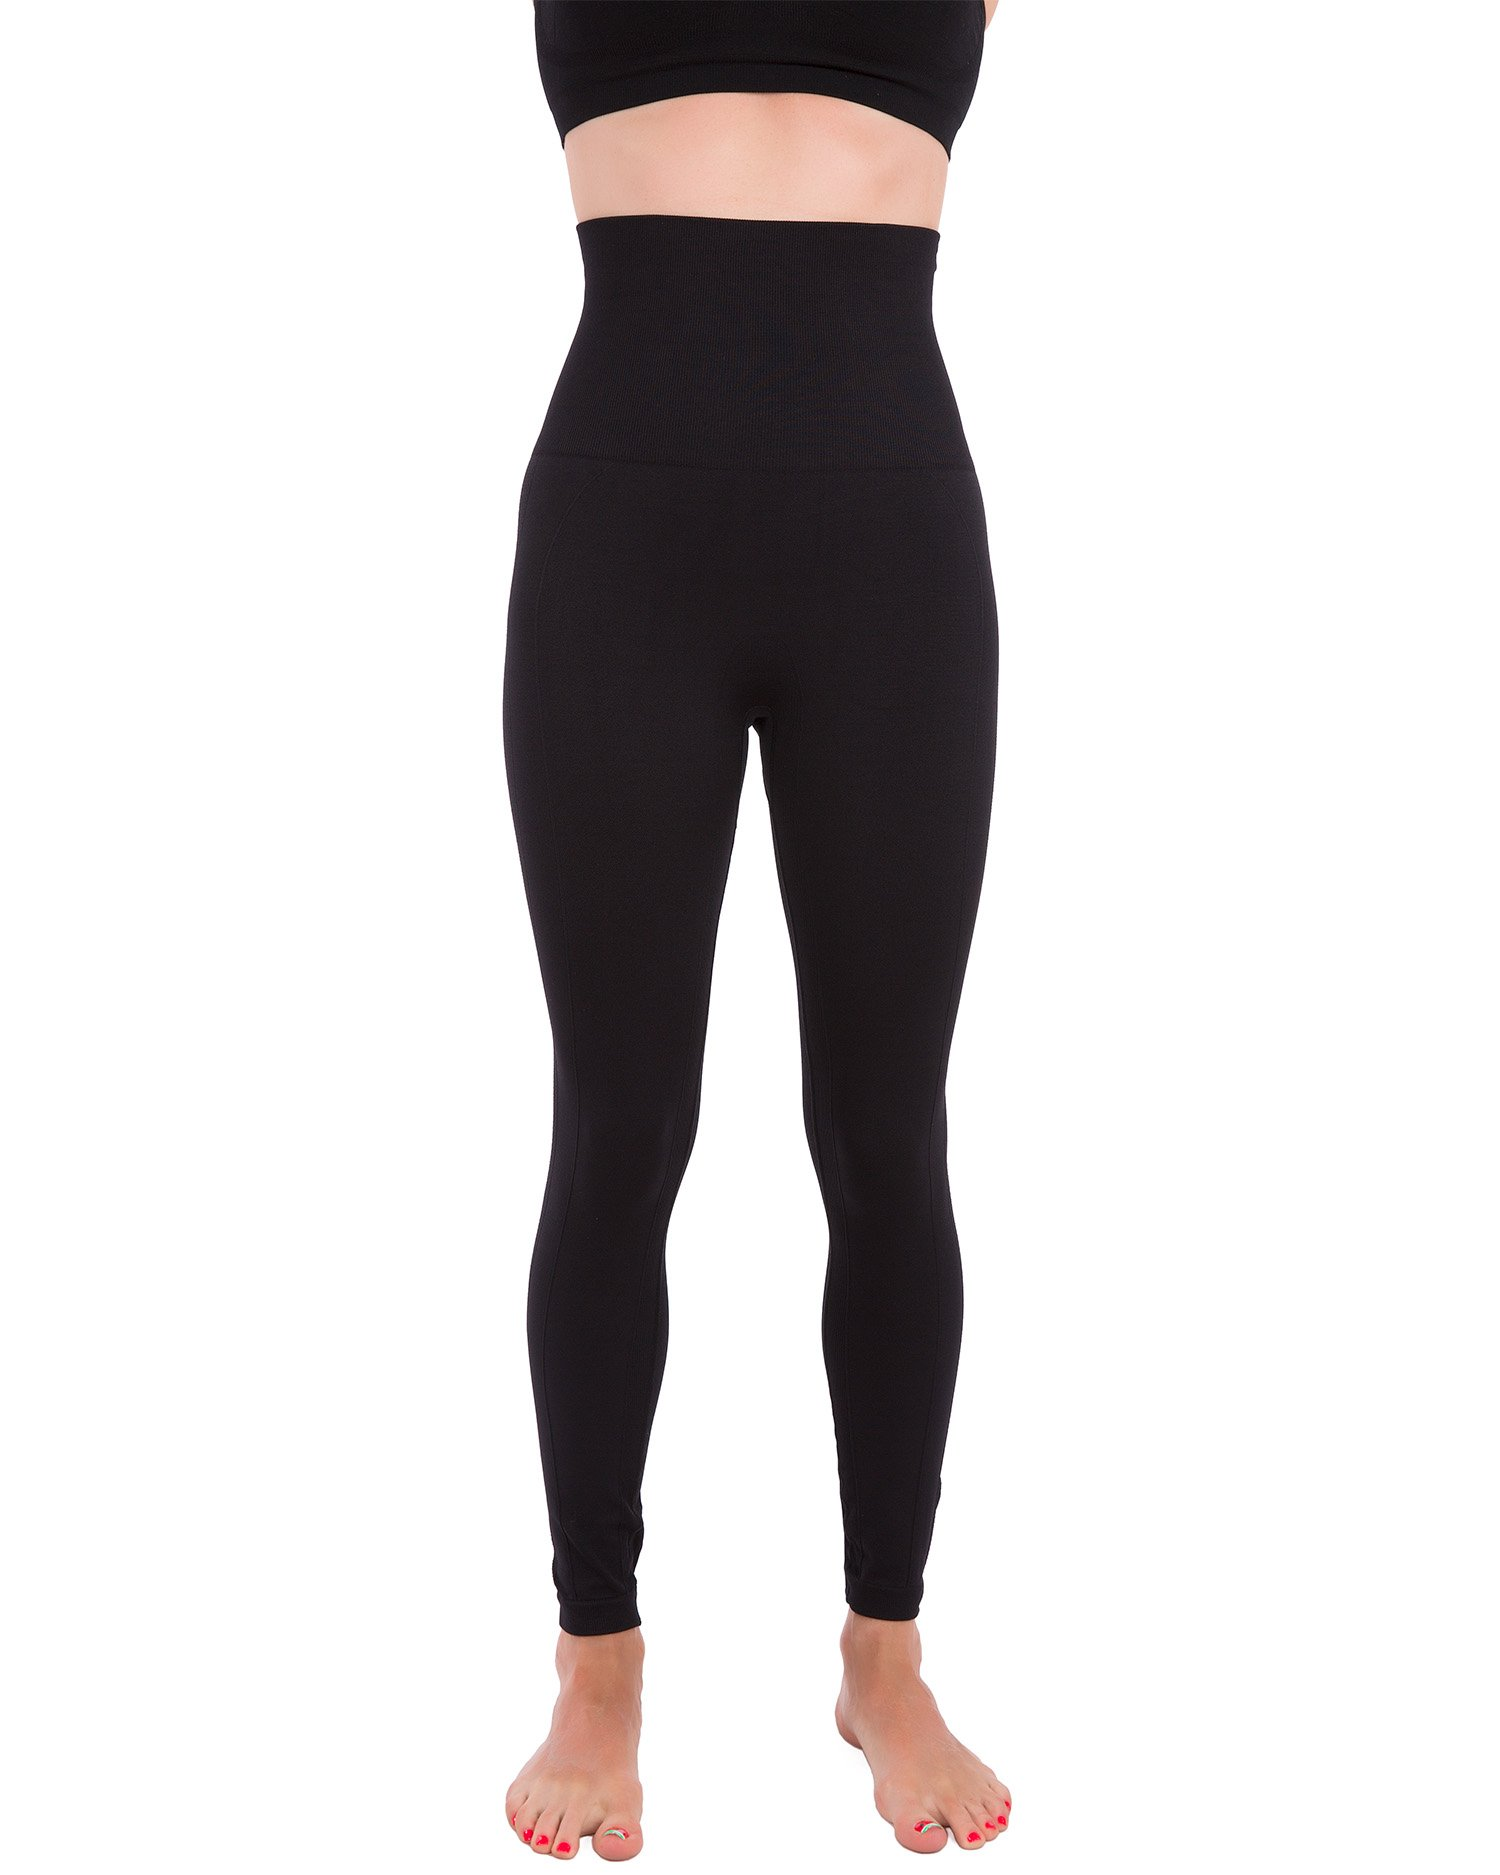 Homma Activewear Compression Slimming Leggings